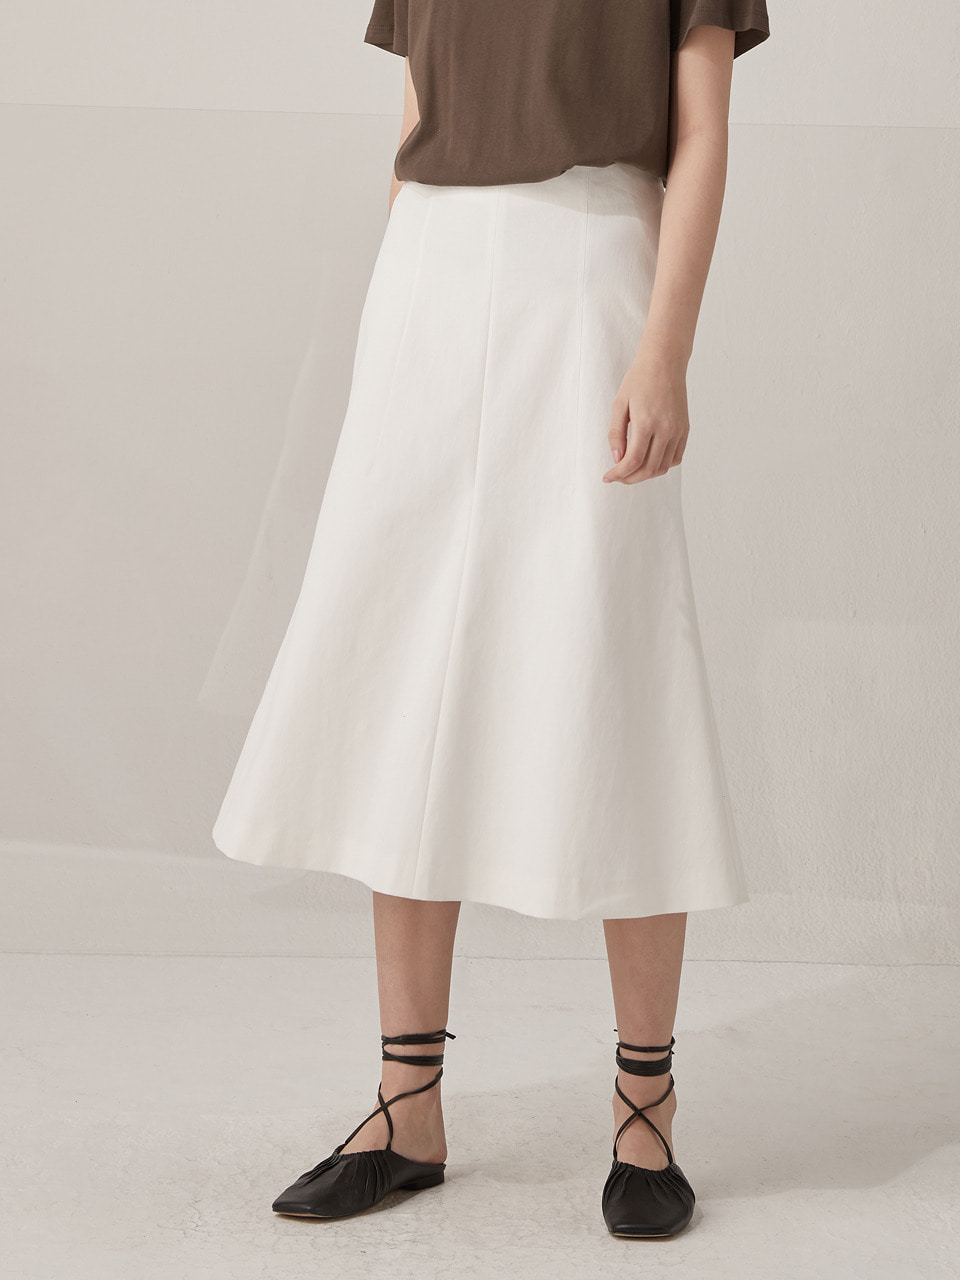 Dart mermaid skirt - White